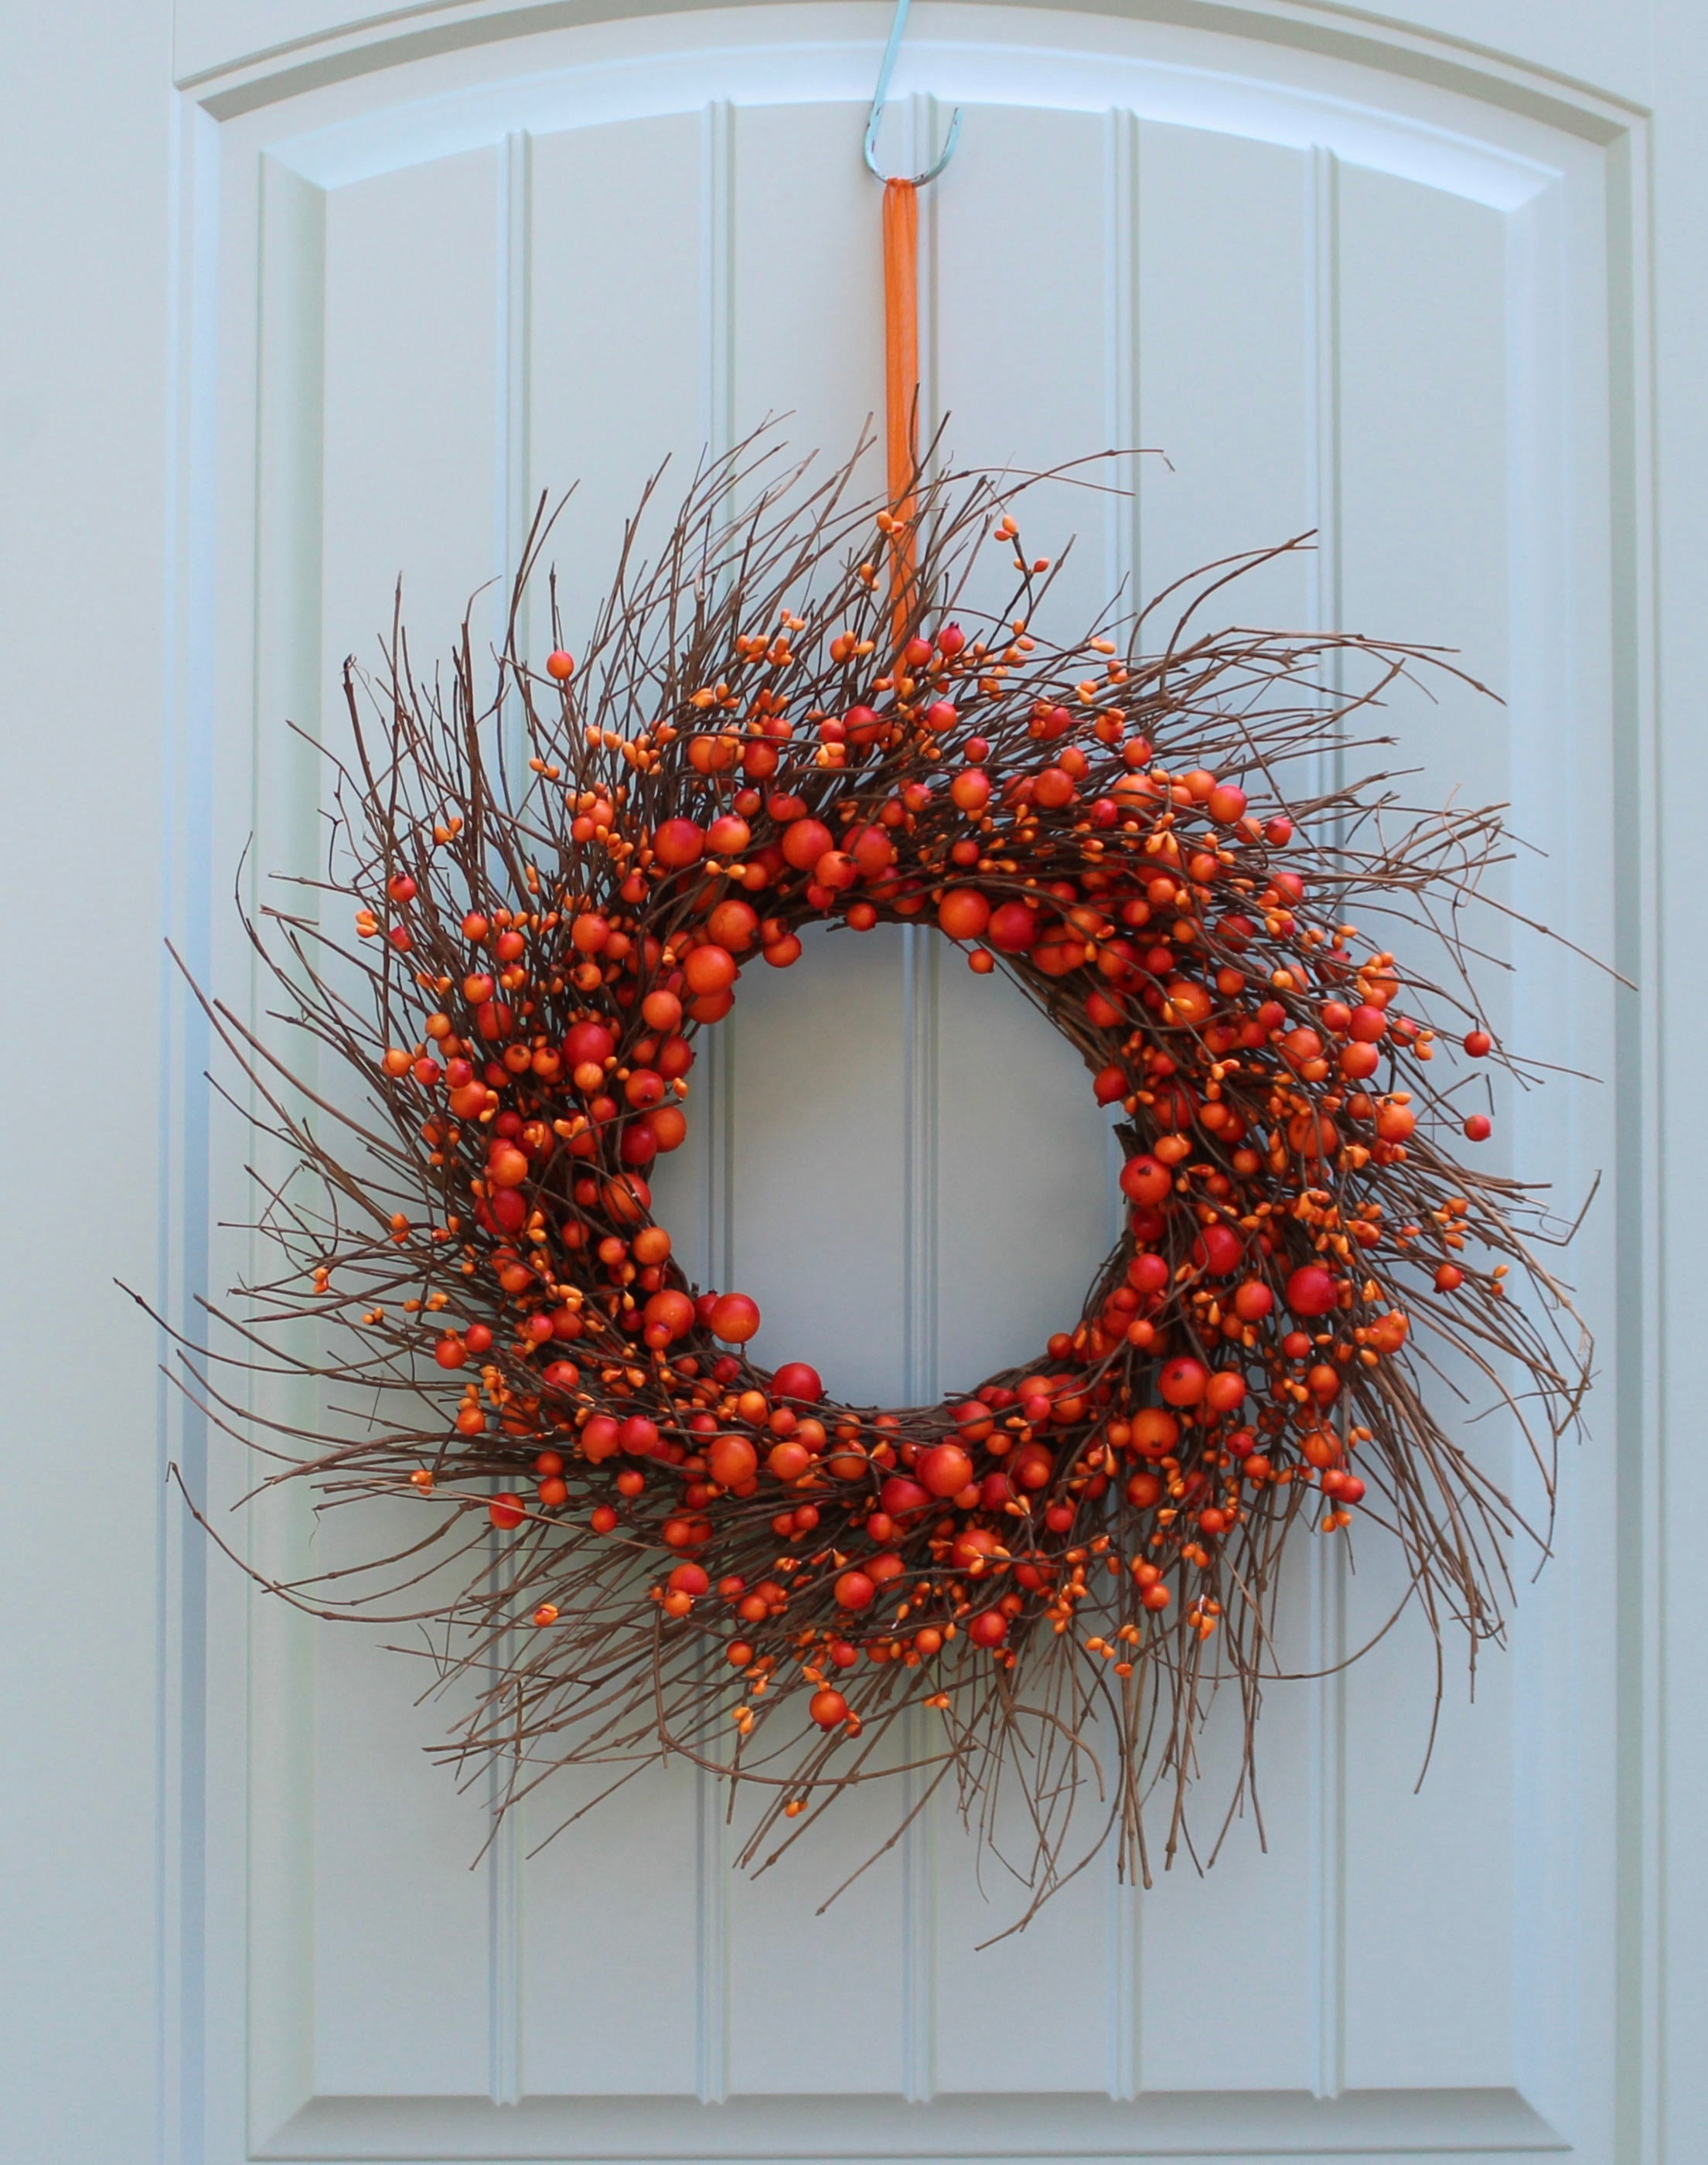 Fall Farmhouse Wreath - Rustic Orange Wreath